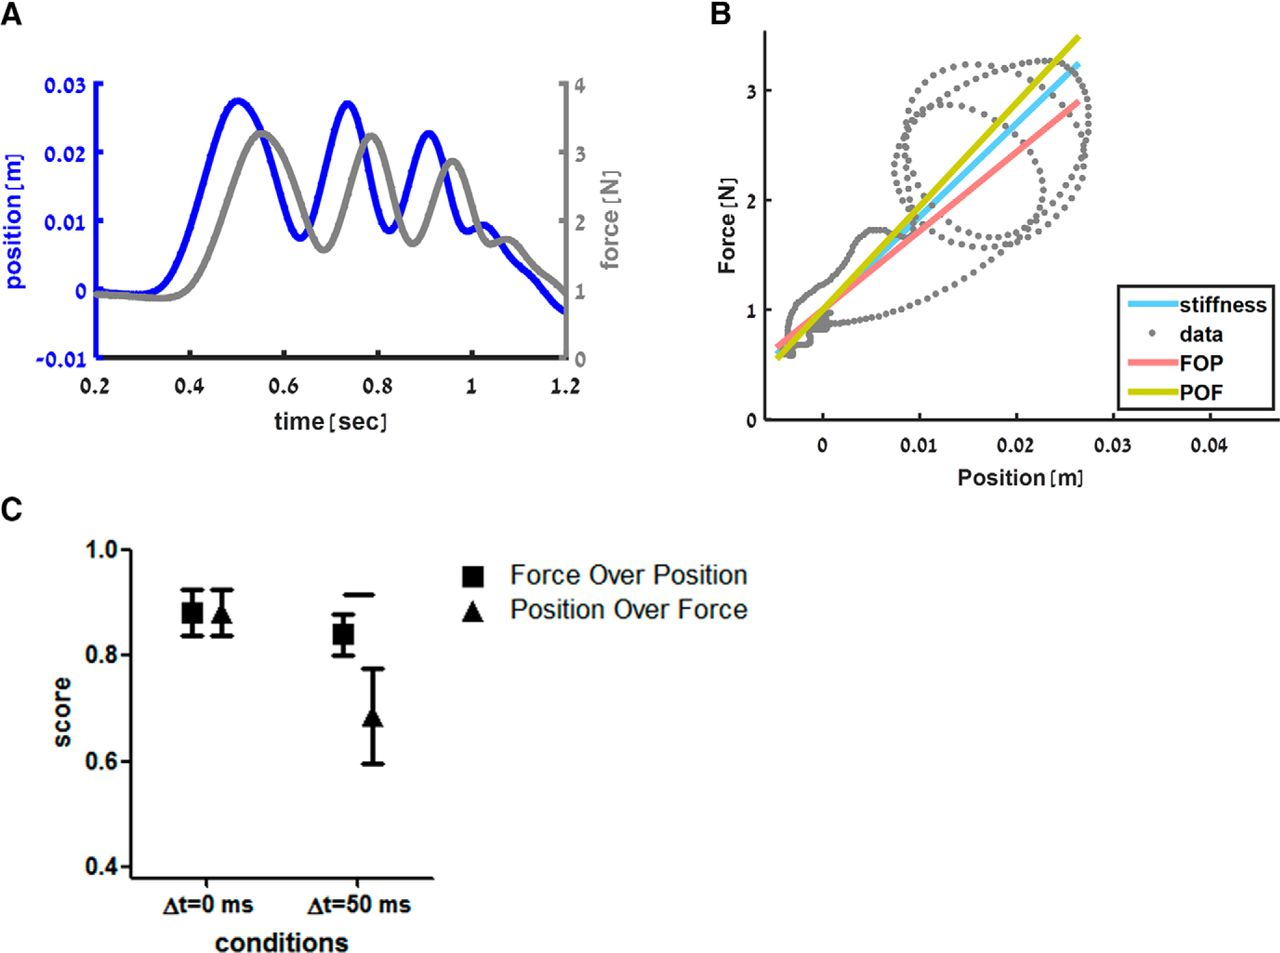 Stimulation Of Ppc Affects The Mapping Between Motion And Force Free Body Diagram Showing Applied Is Only Partially Download Figure